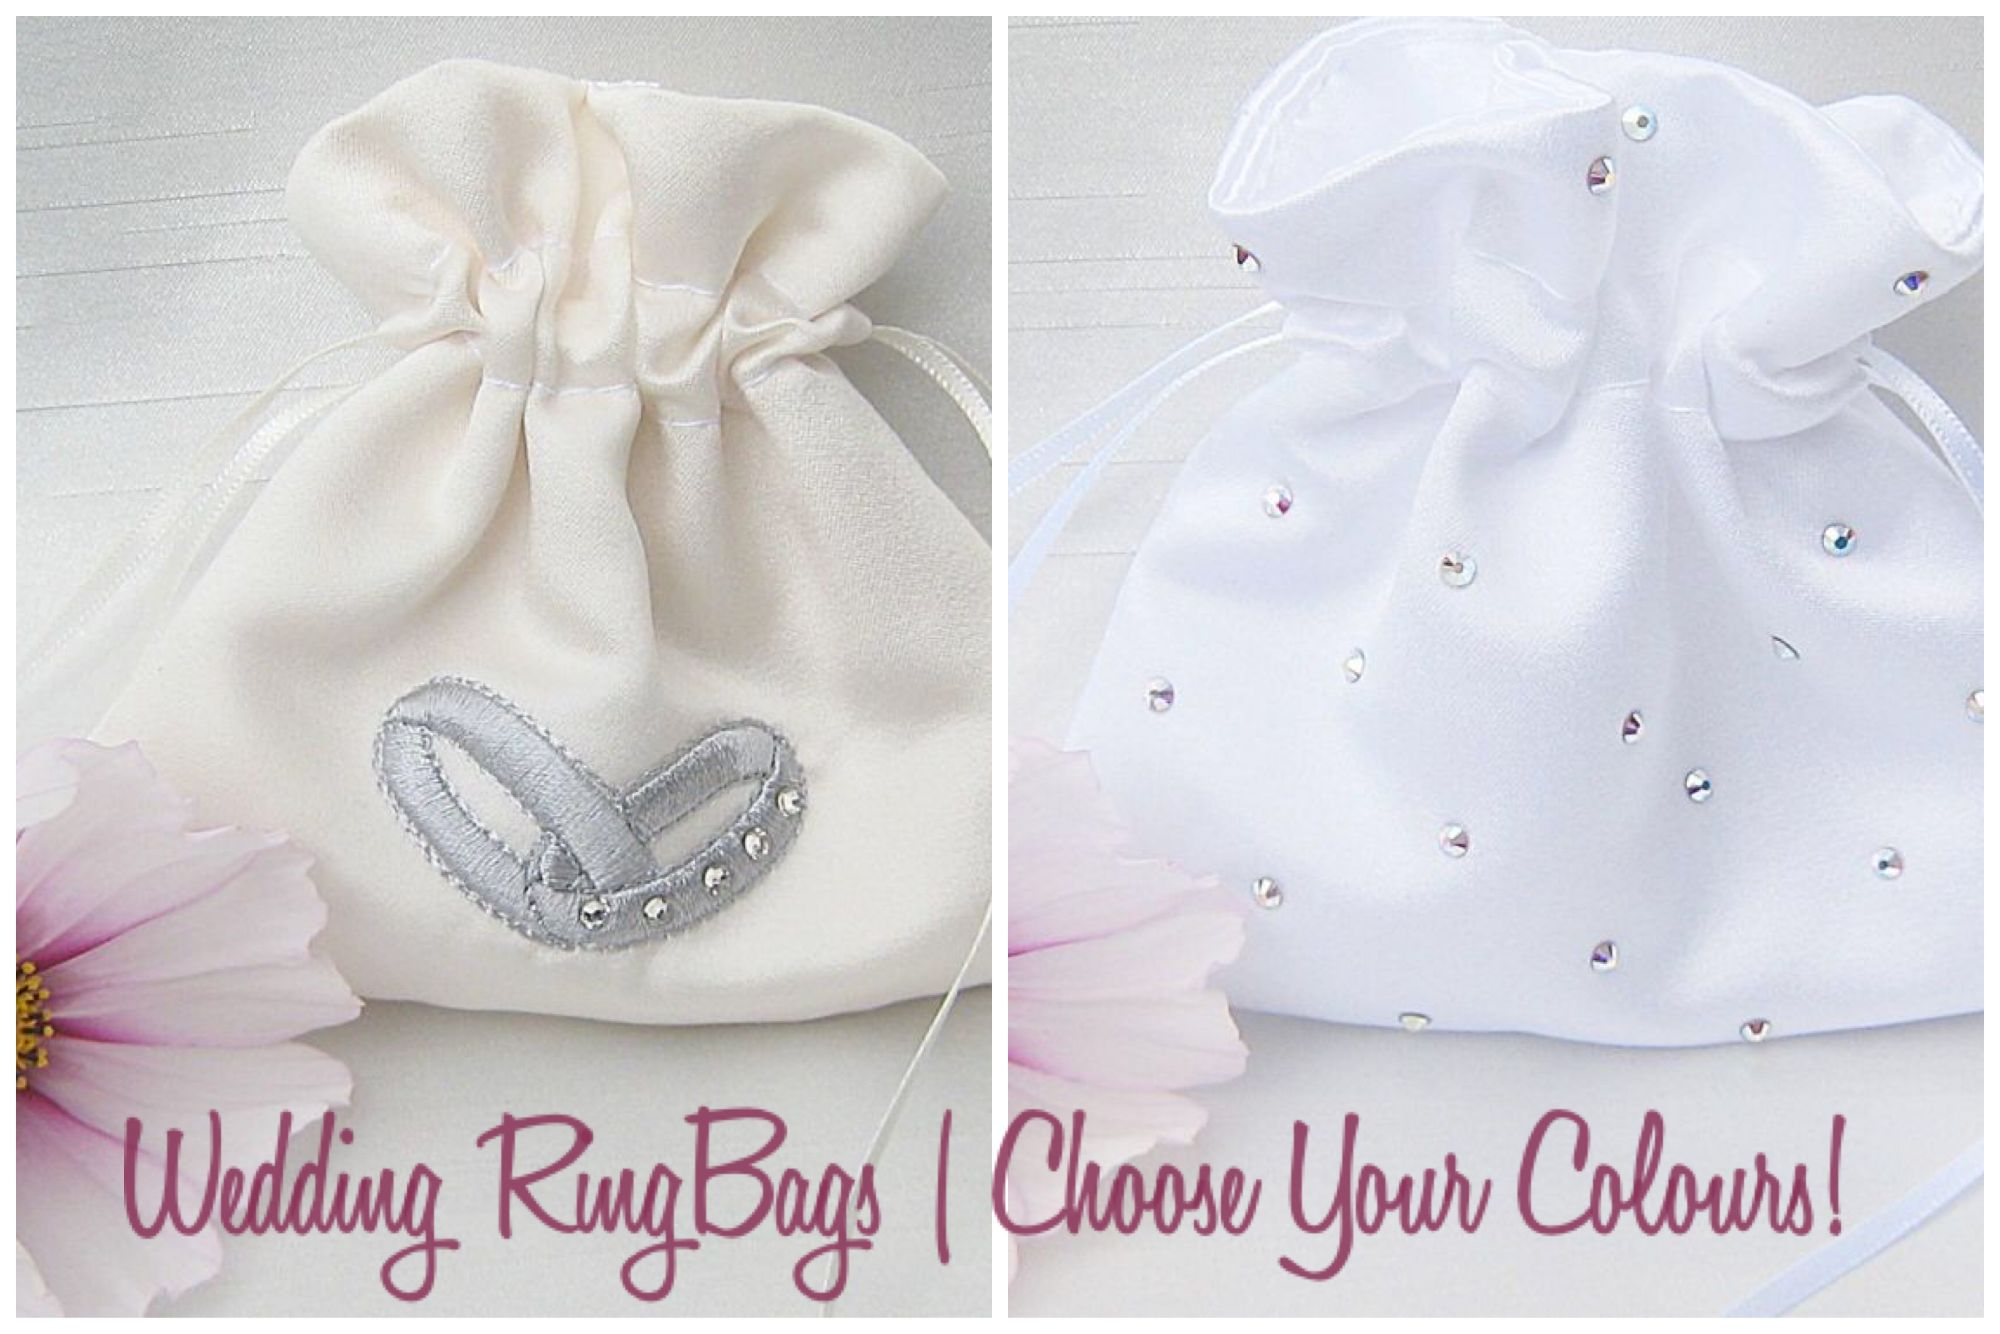 Wedding Ring Bags To Hold The Rings On Wedding Day